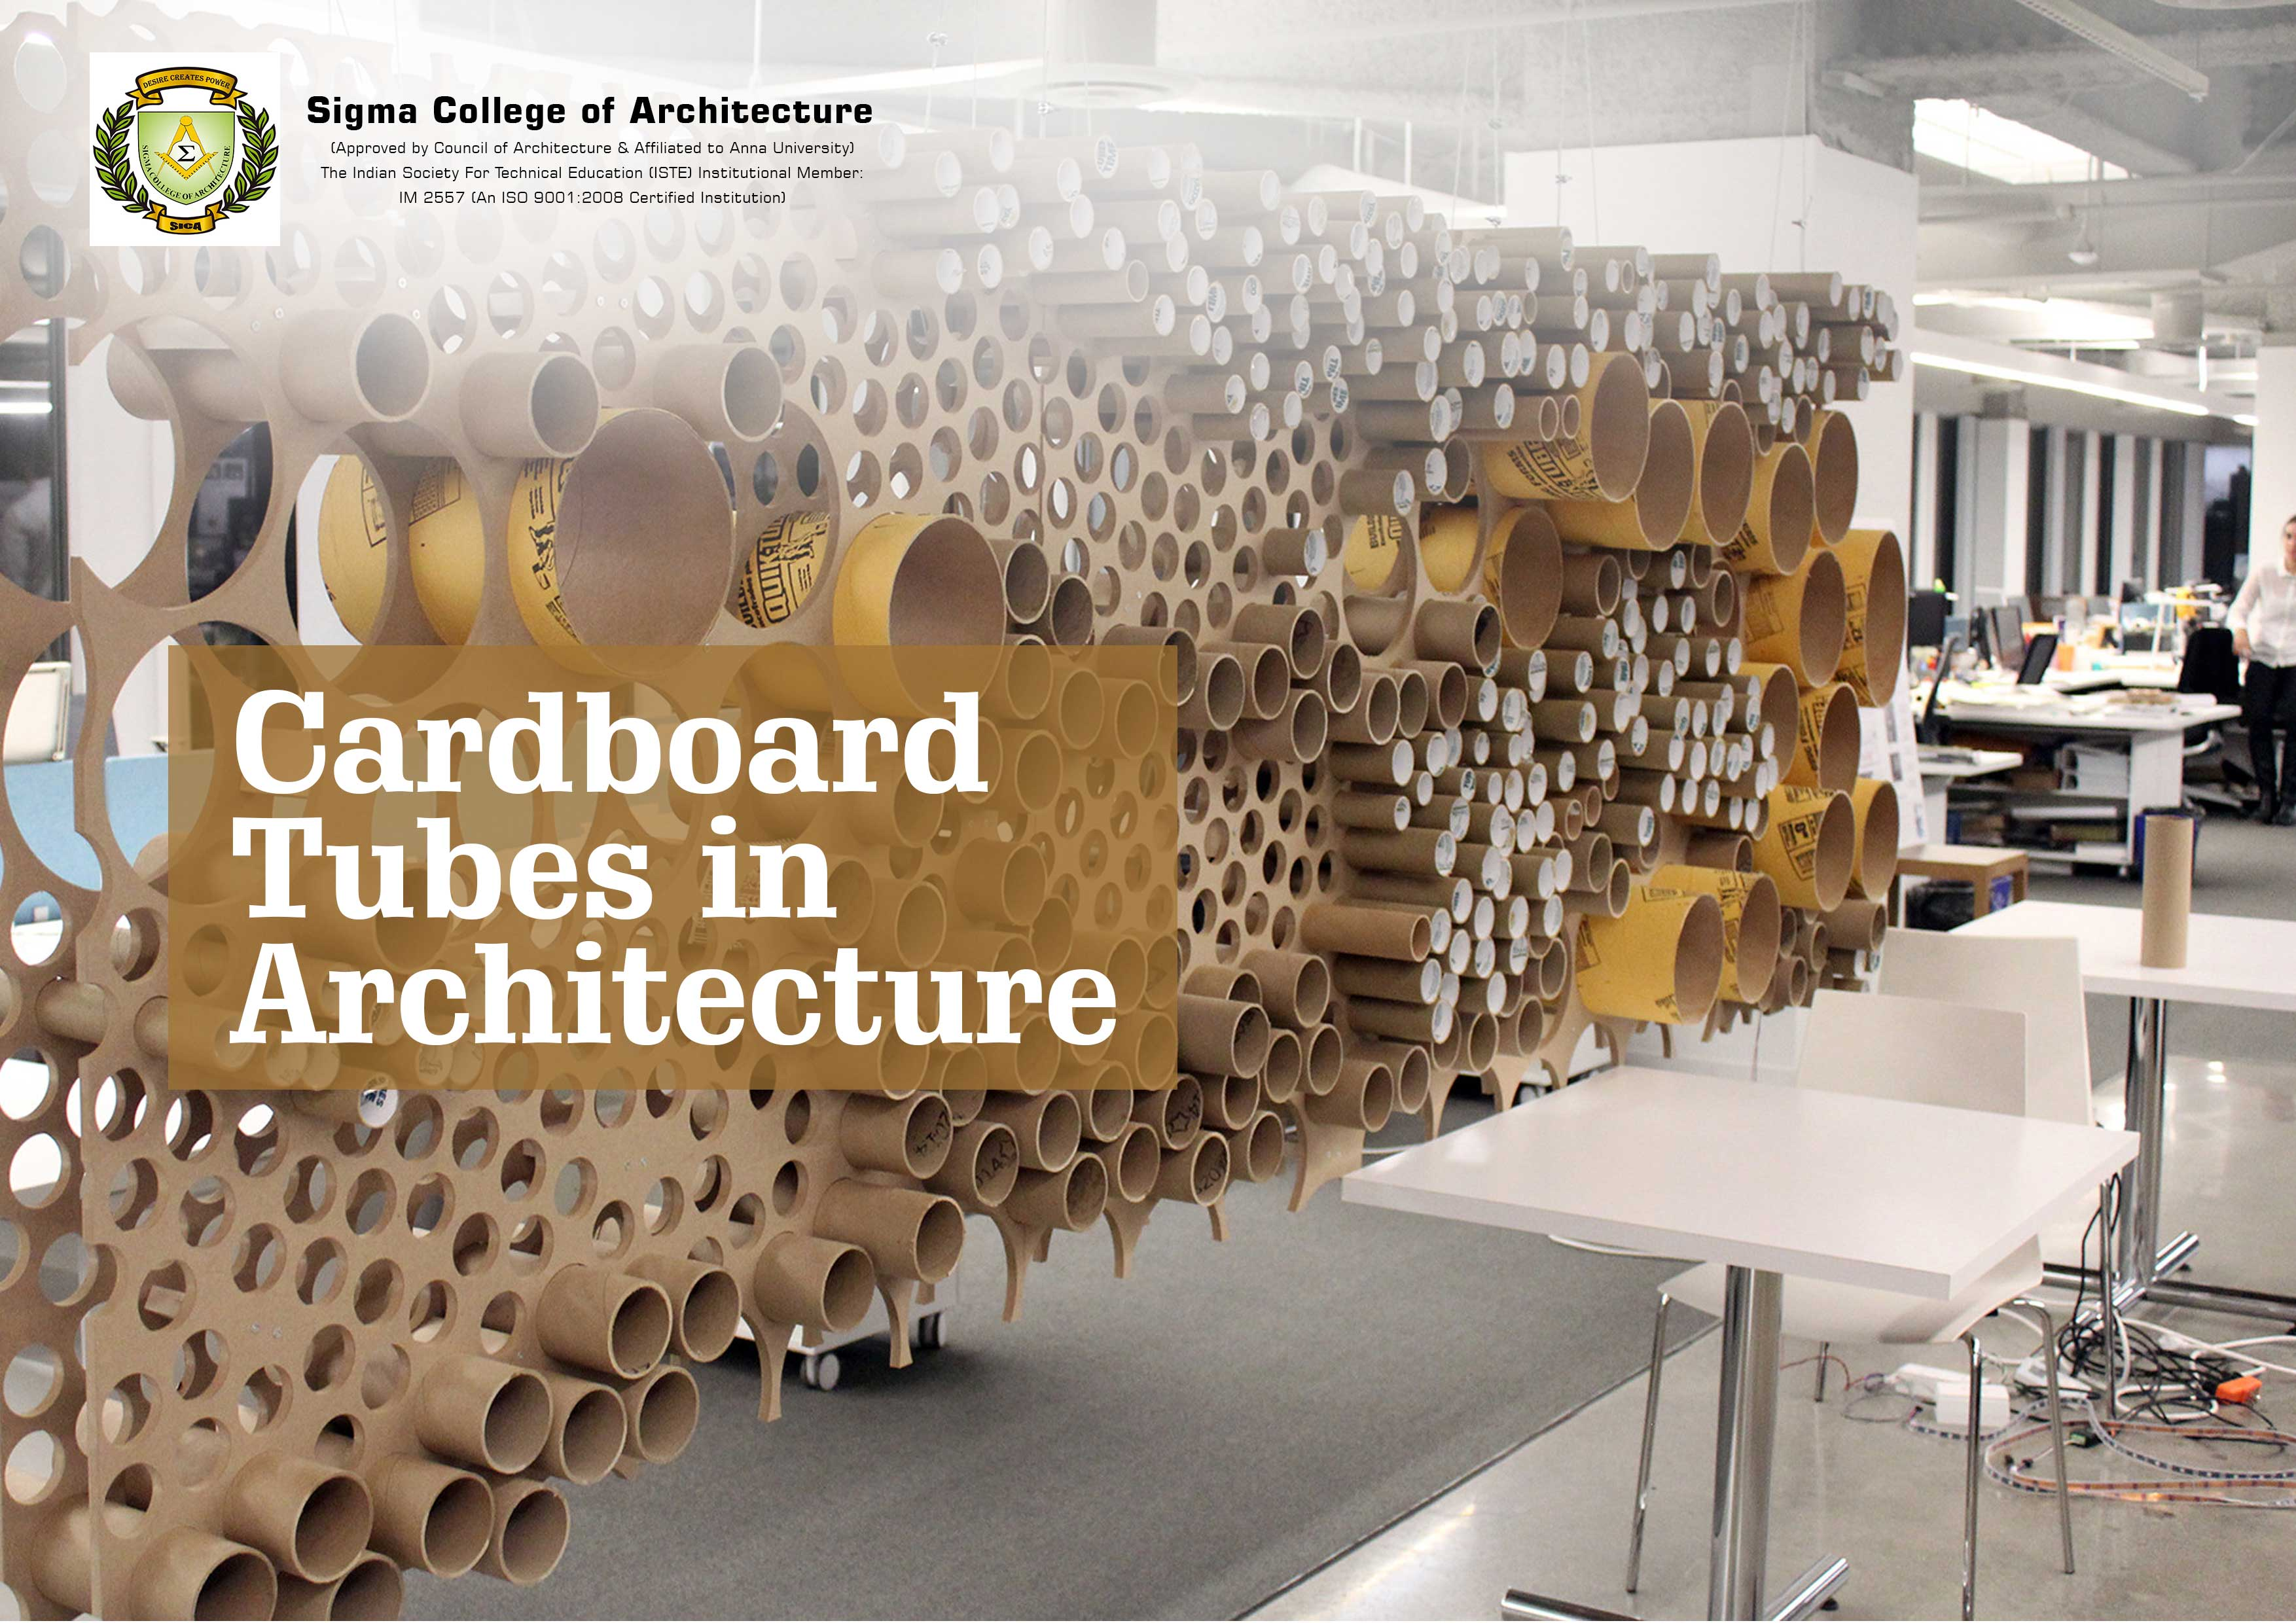 Cardboard Tubes in Architecture